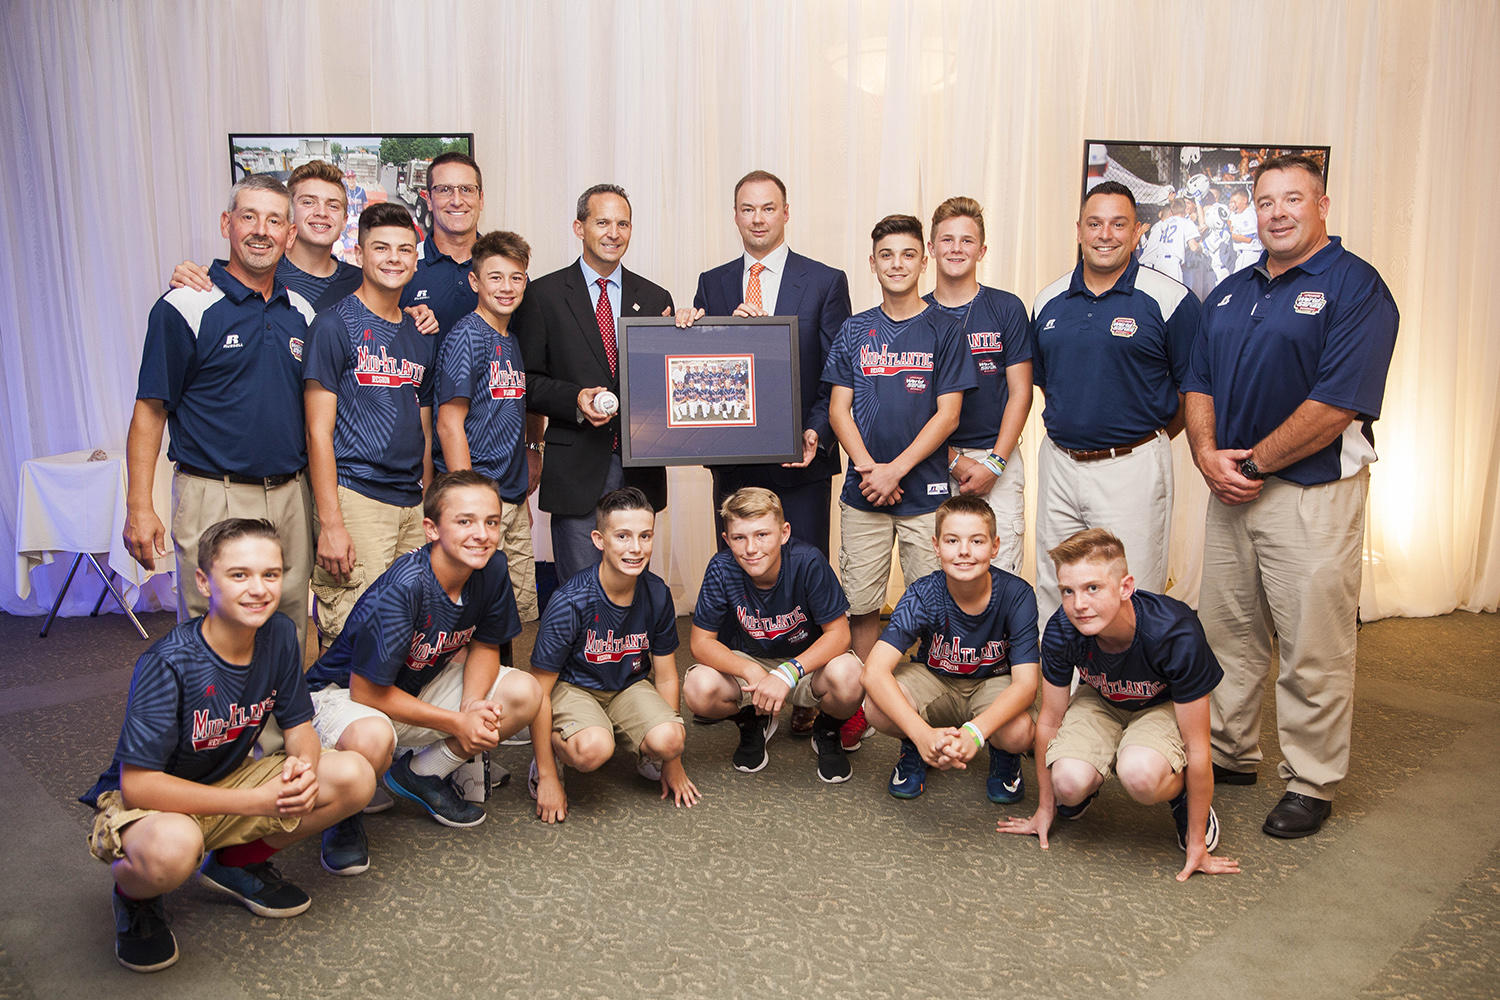 The Maine-Endwell Little League team pictured with National Baseball Hall of Fame President Jeff Idelson, who spoke at their banquet earlier this year. Also pictured (holding the photo) is Hall of Fame Board of Director's member and Legendary Pictures CEO Thomas Tull, who is a proud alumnus of the Maine-Endwell Little League program. (National Baseball Hall of Fame)